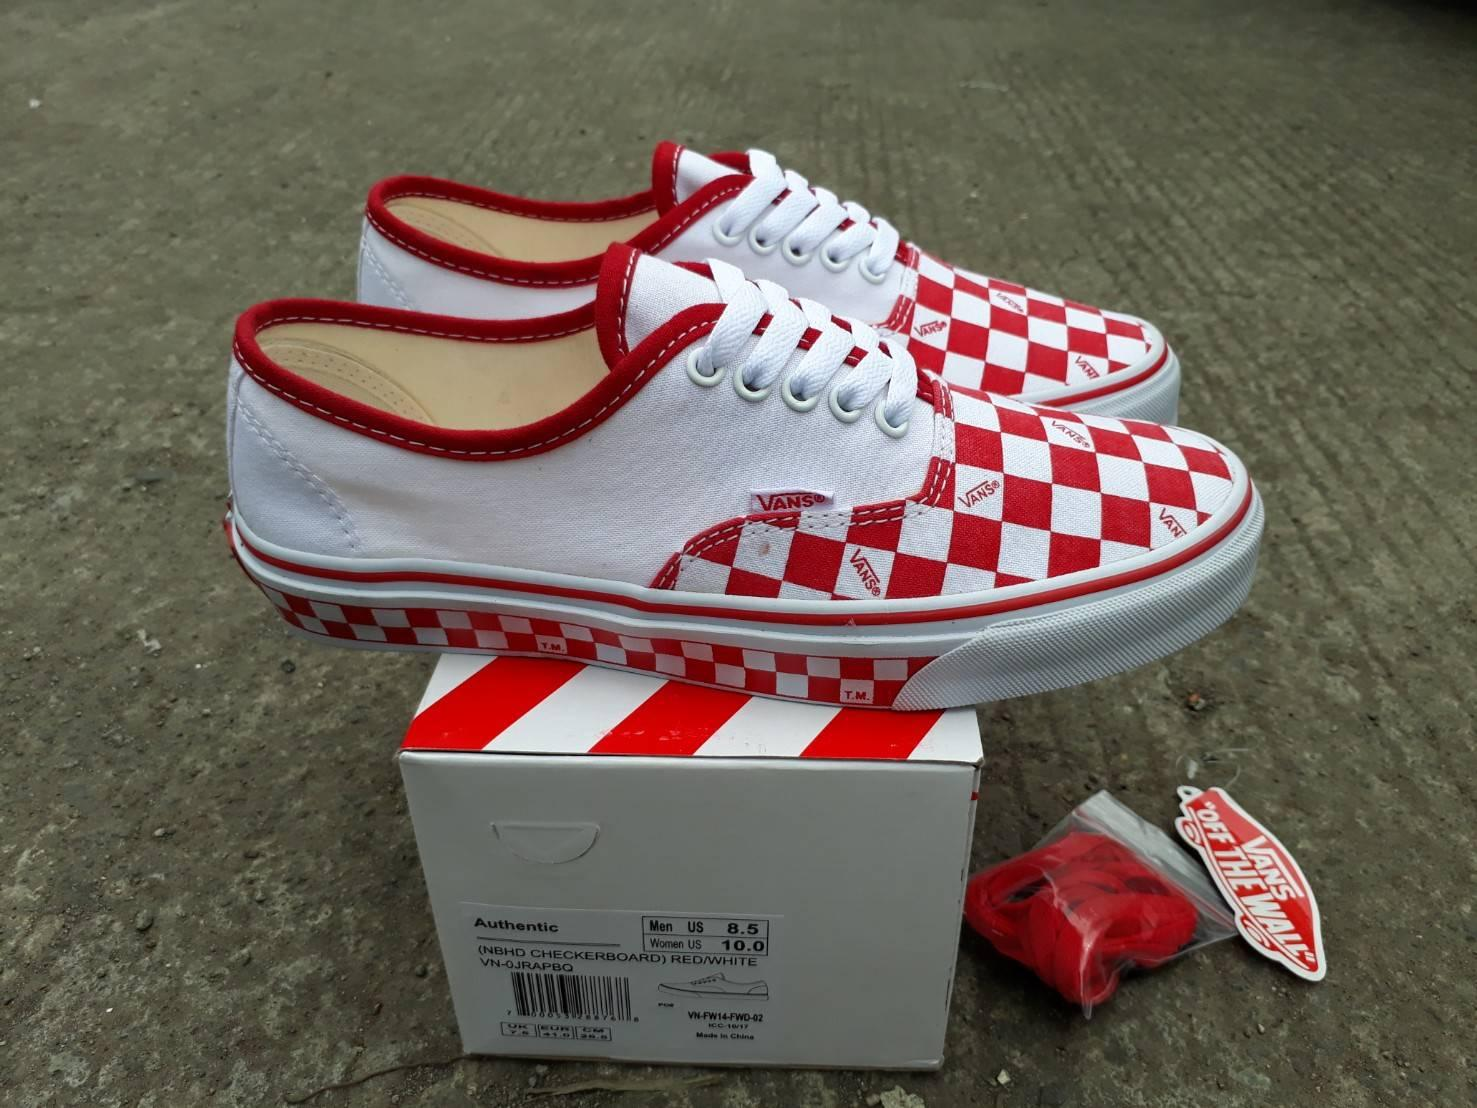 sepatu sneakers vns authentic nbhd checkerboard wafle icc